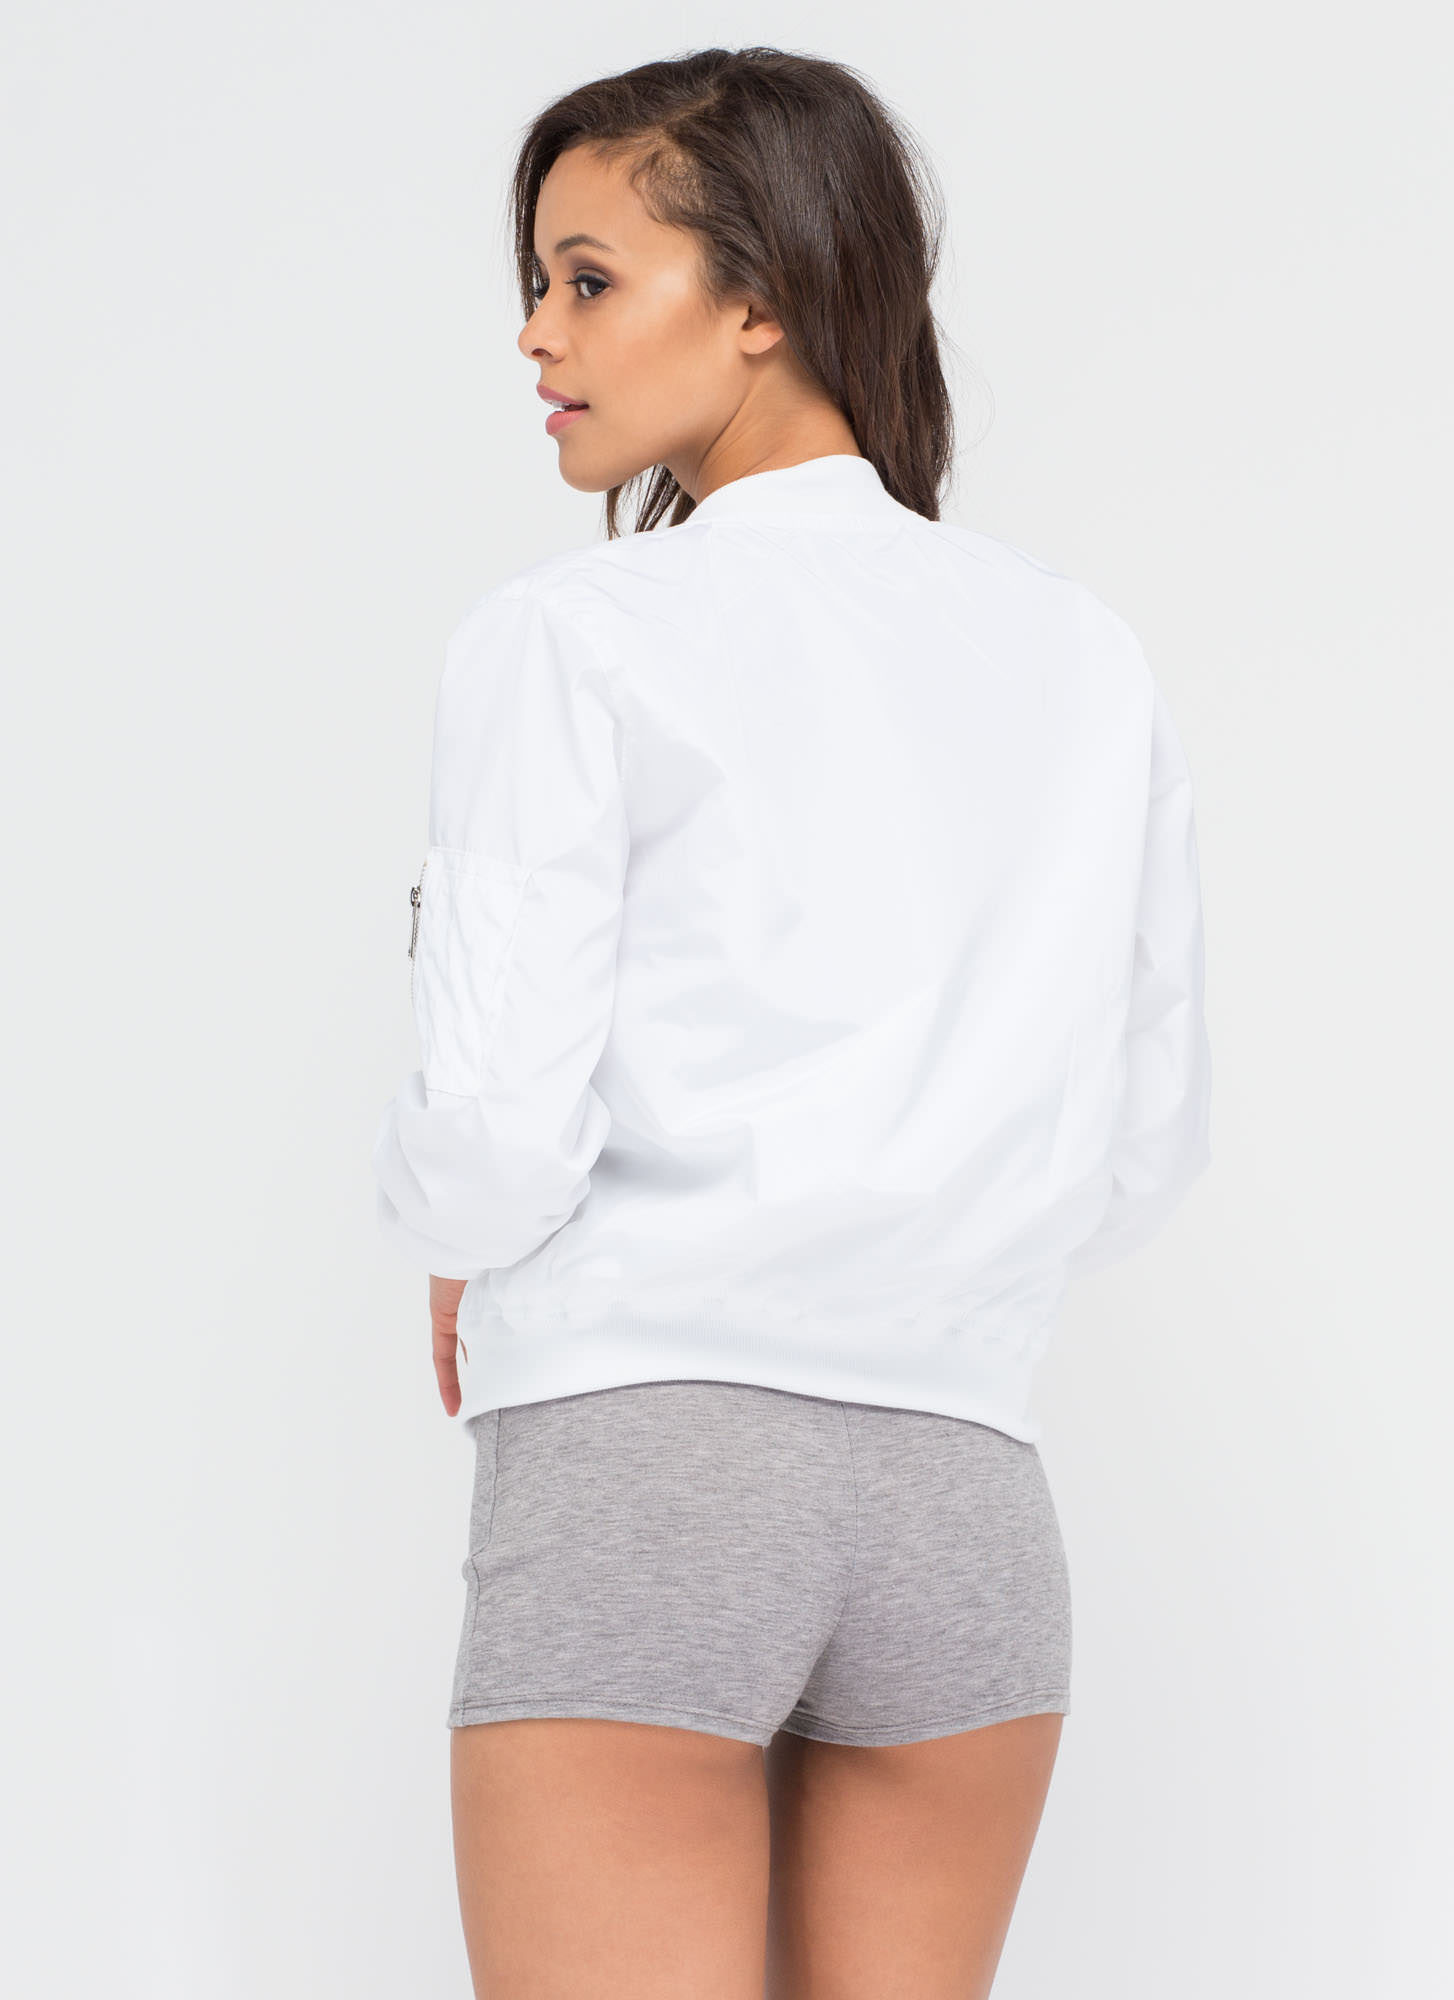 Top It Off Bomber Windbreaker Jacket WHITE